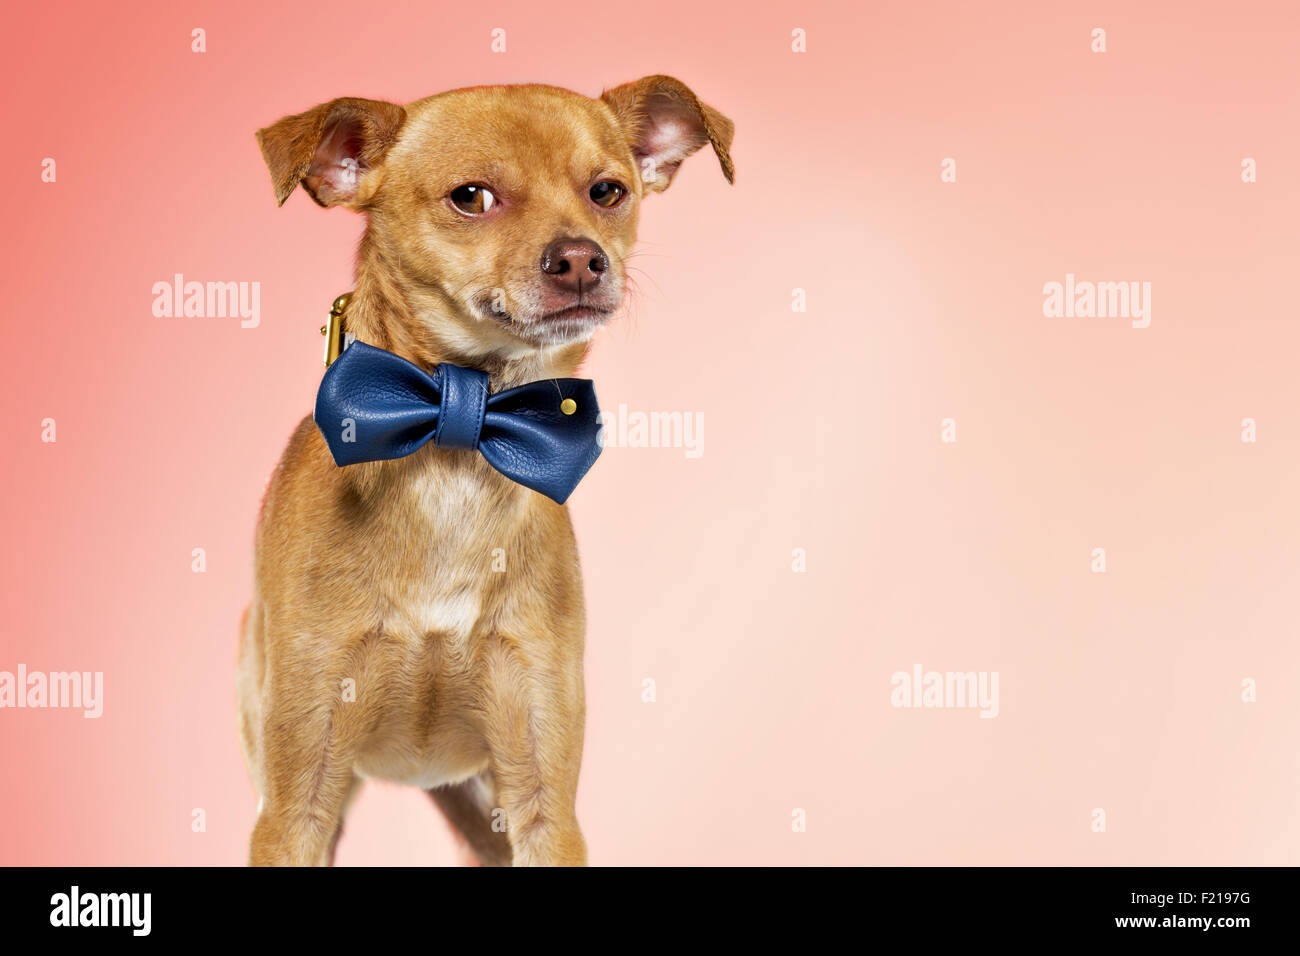 Dapper chihuahua dog in bow tie on studio backdrop. - Stock Image